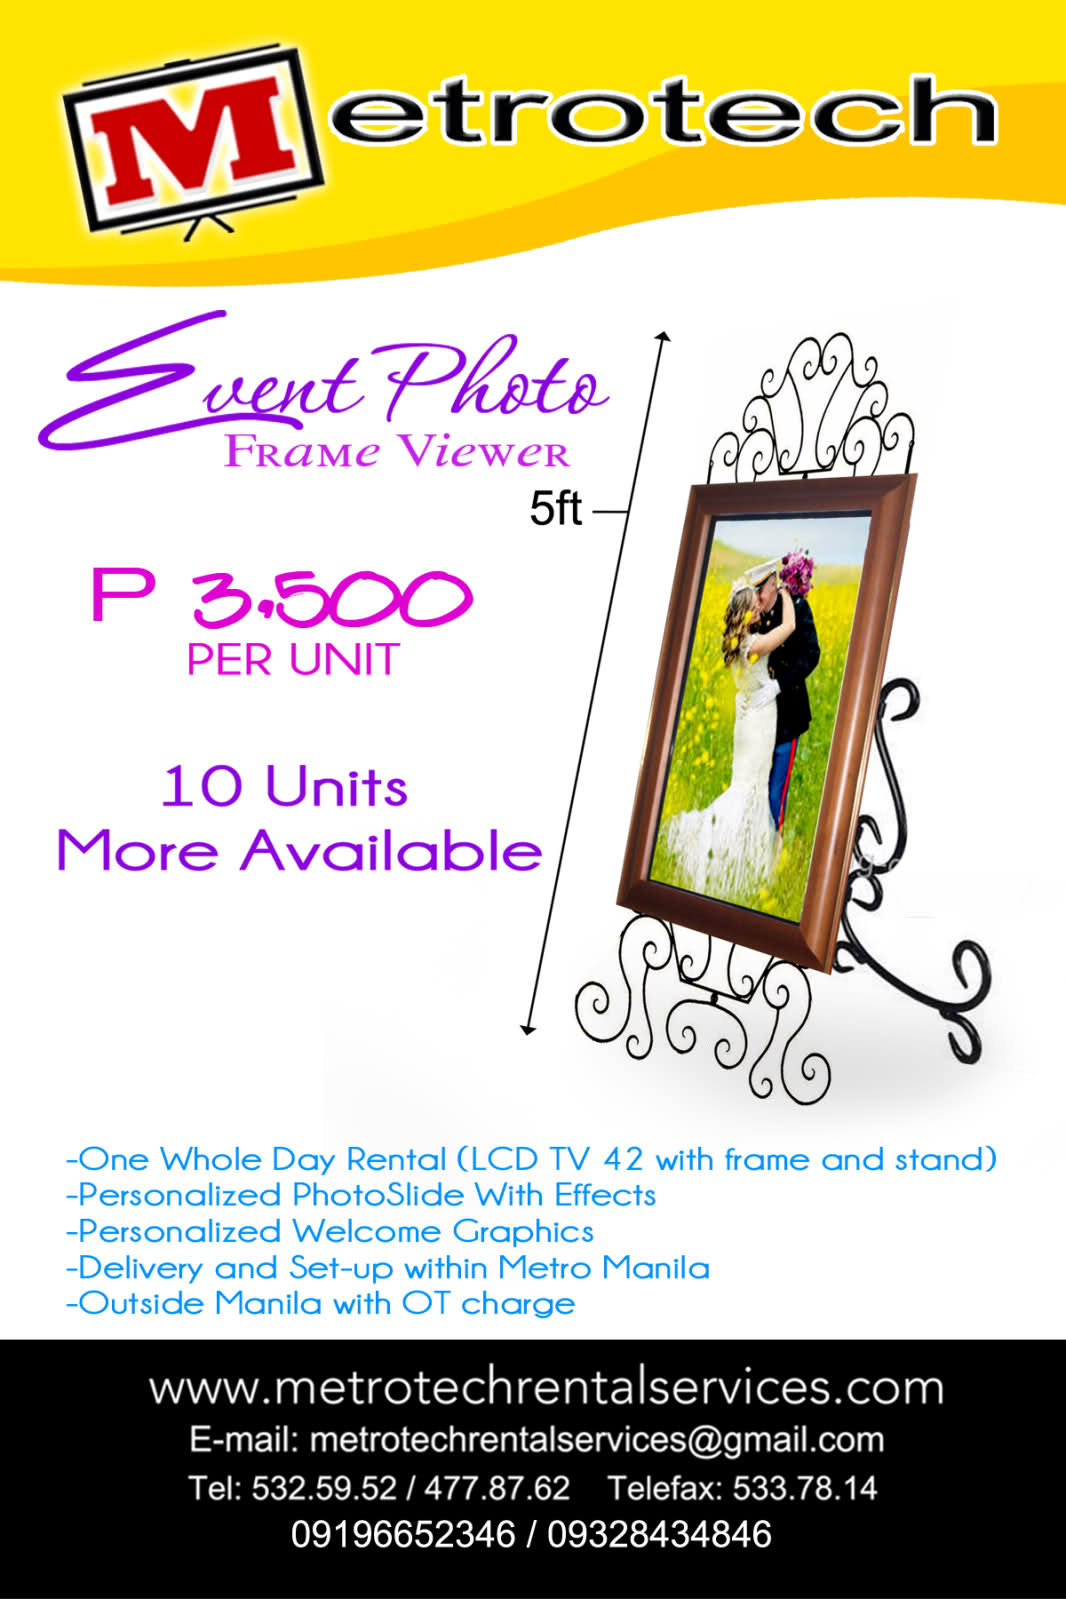 philippine wedding trends exciting technology for your